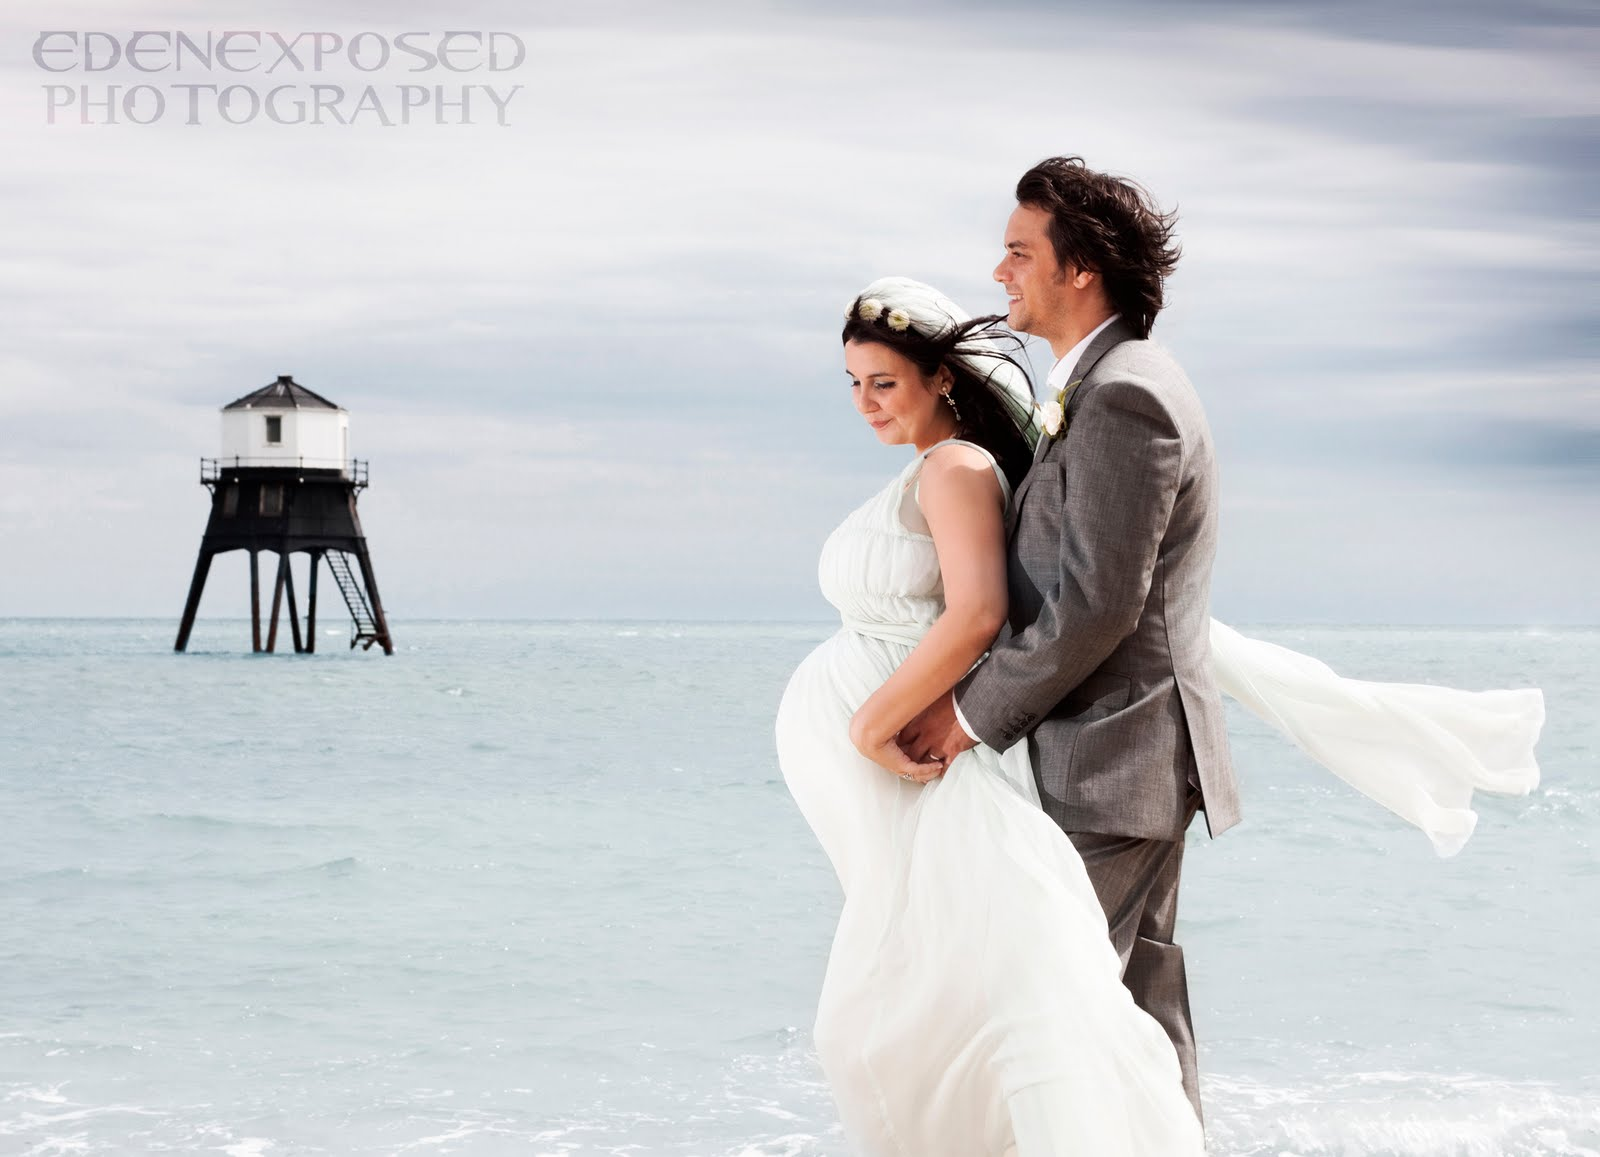 Eden exposed photography for 5 months pregnant wedding dress